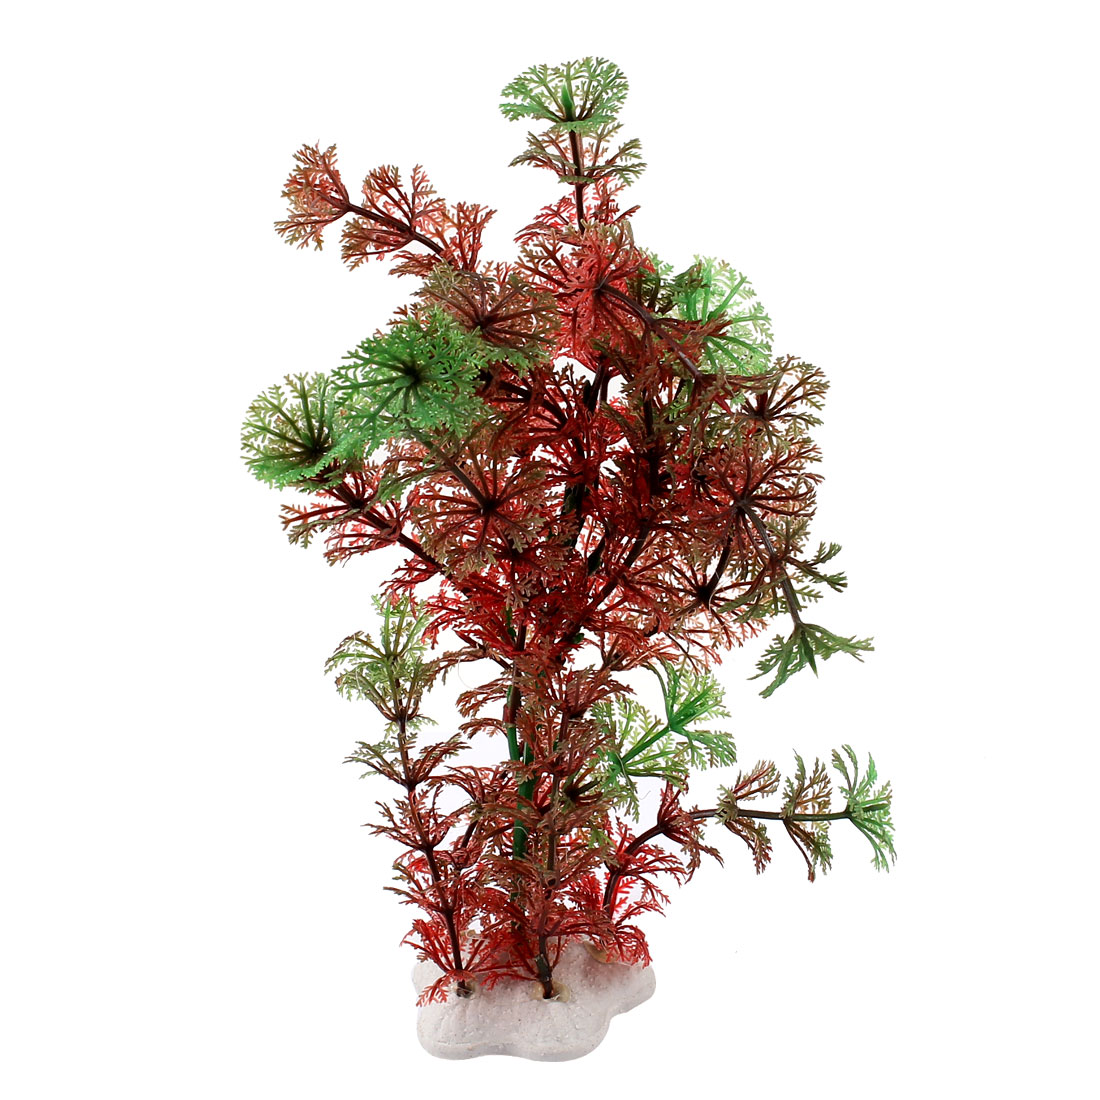 "Aquarium Fish Tank Ornament Landscaping Artificial Emulational Underwater Water Plant Grass Decor Green Amaranth 8.7"" Height"